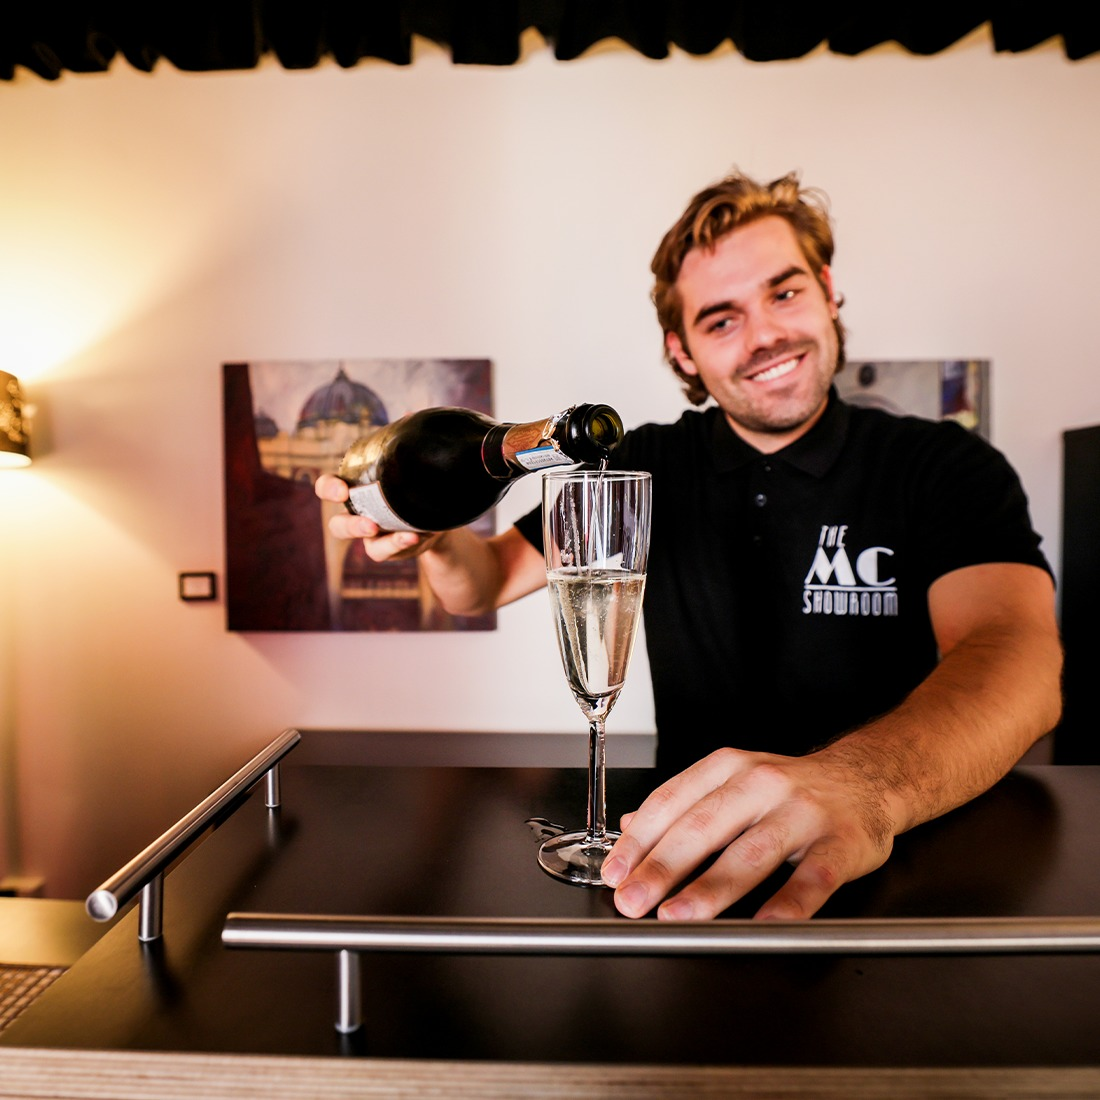 A man at a bar, pouring a glass of champagne